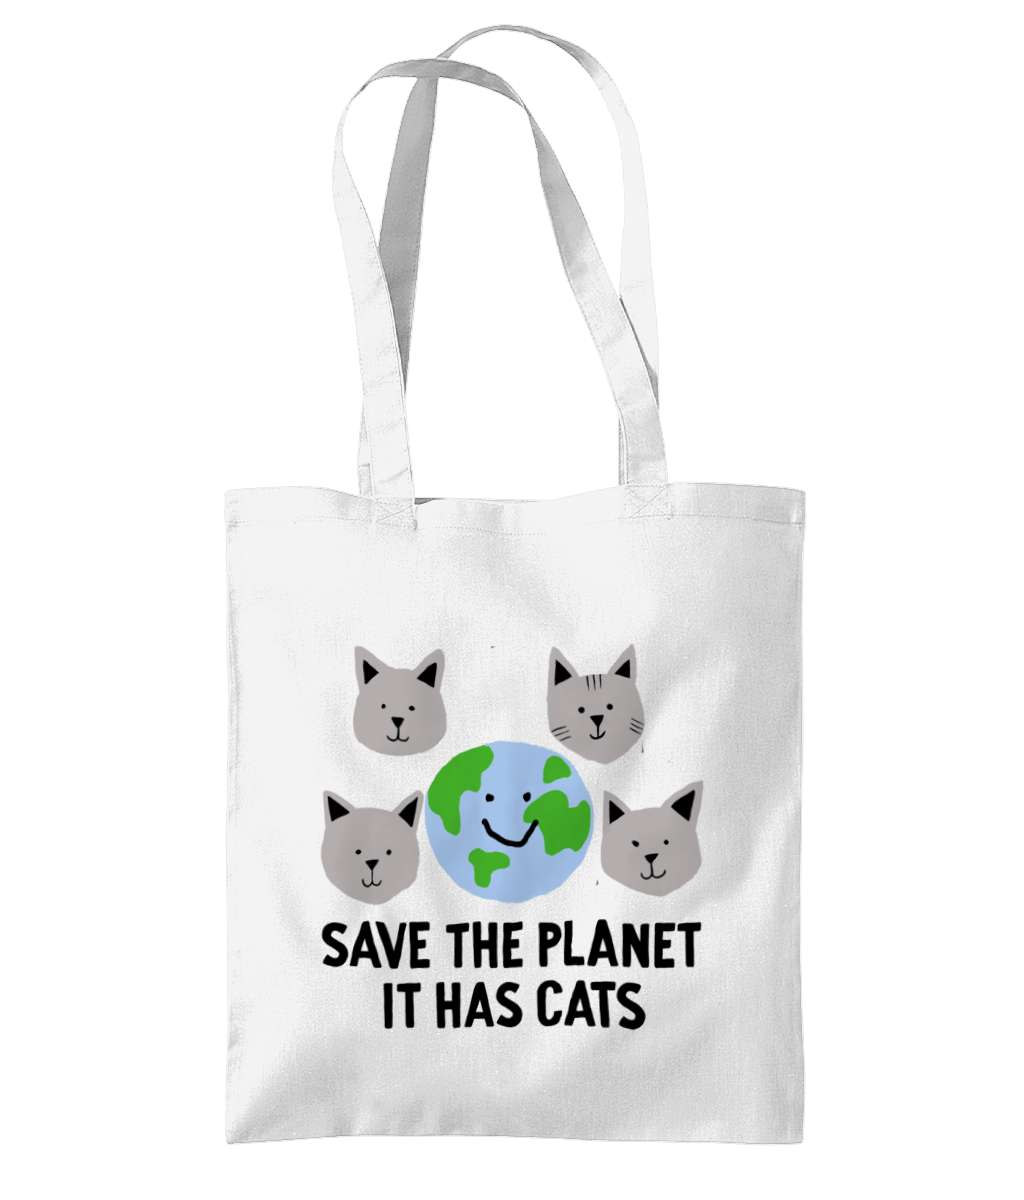 Save the Planet, It has Cats tote bags